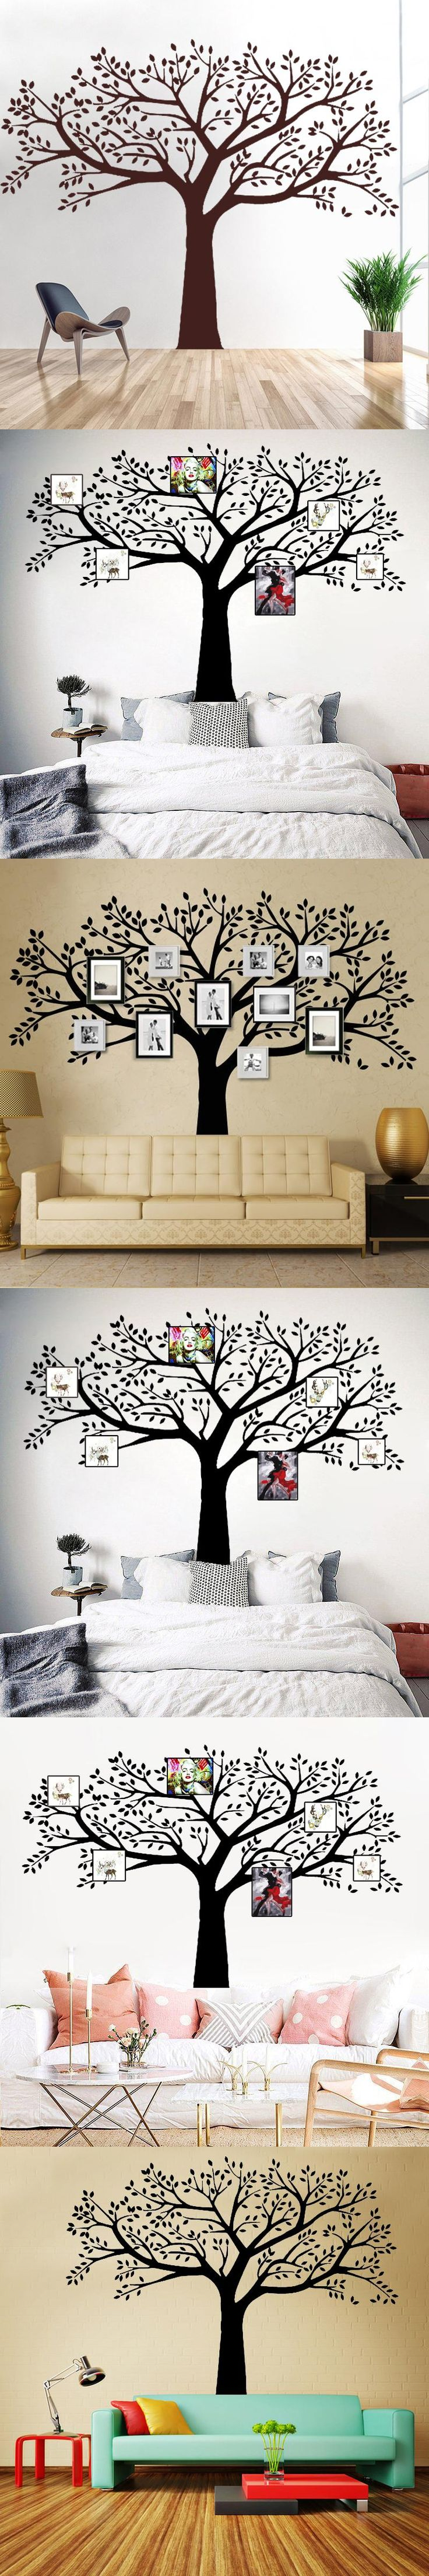 Best 25 family tree wall sticker ideas on pinterest wall b16 family tree wall decals vinyl wall decal photo frame tree stickers living room home decor amipublicfo Choice Image